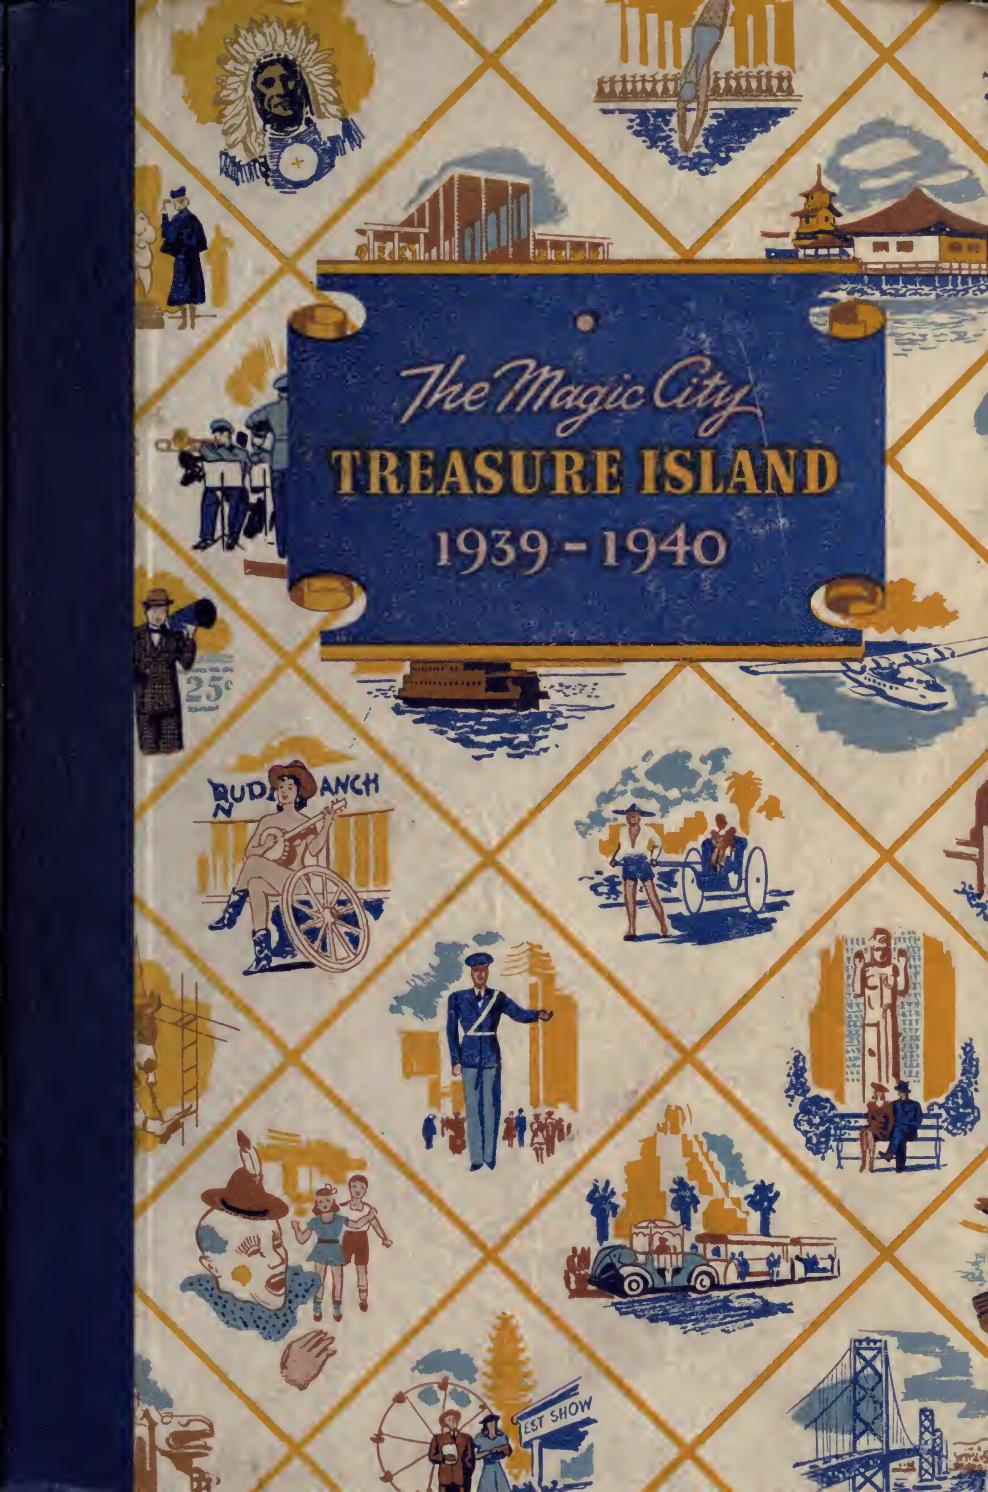 Treasure Island 1939 1940 By Bruno Manuel Dos Anjos Marques